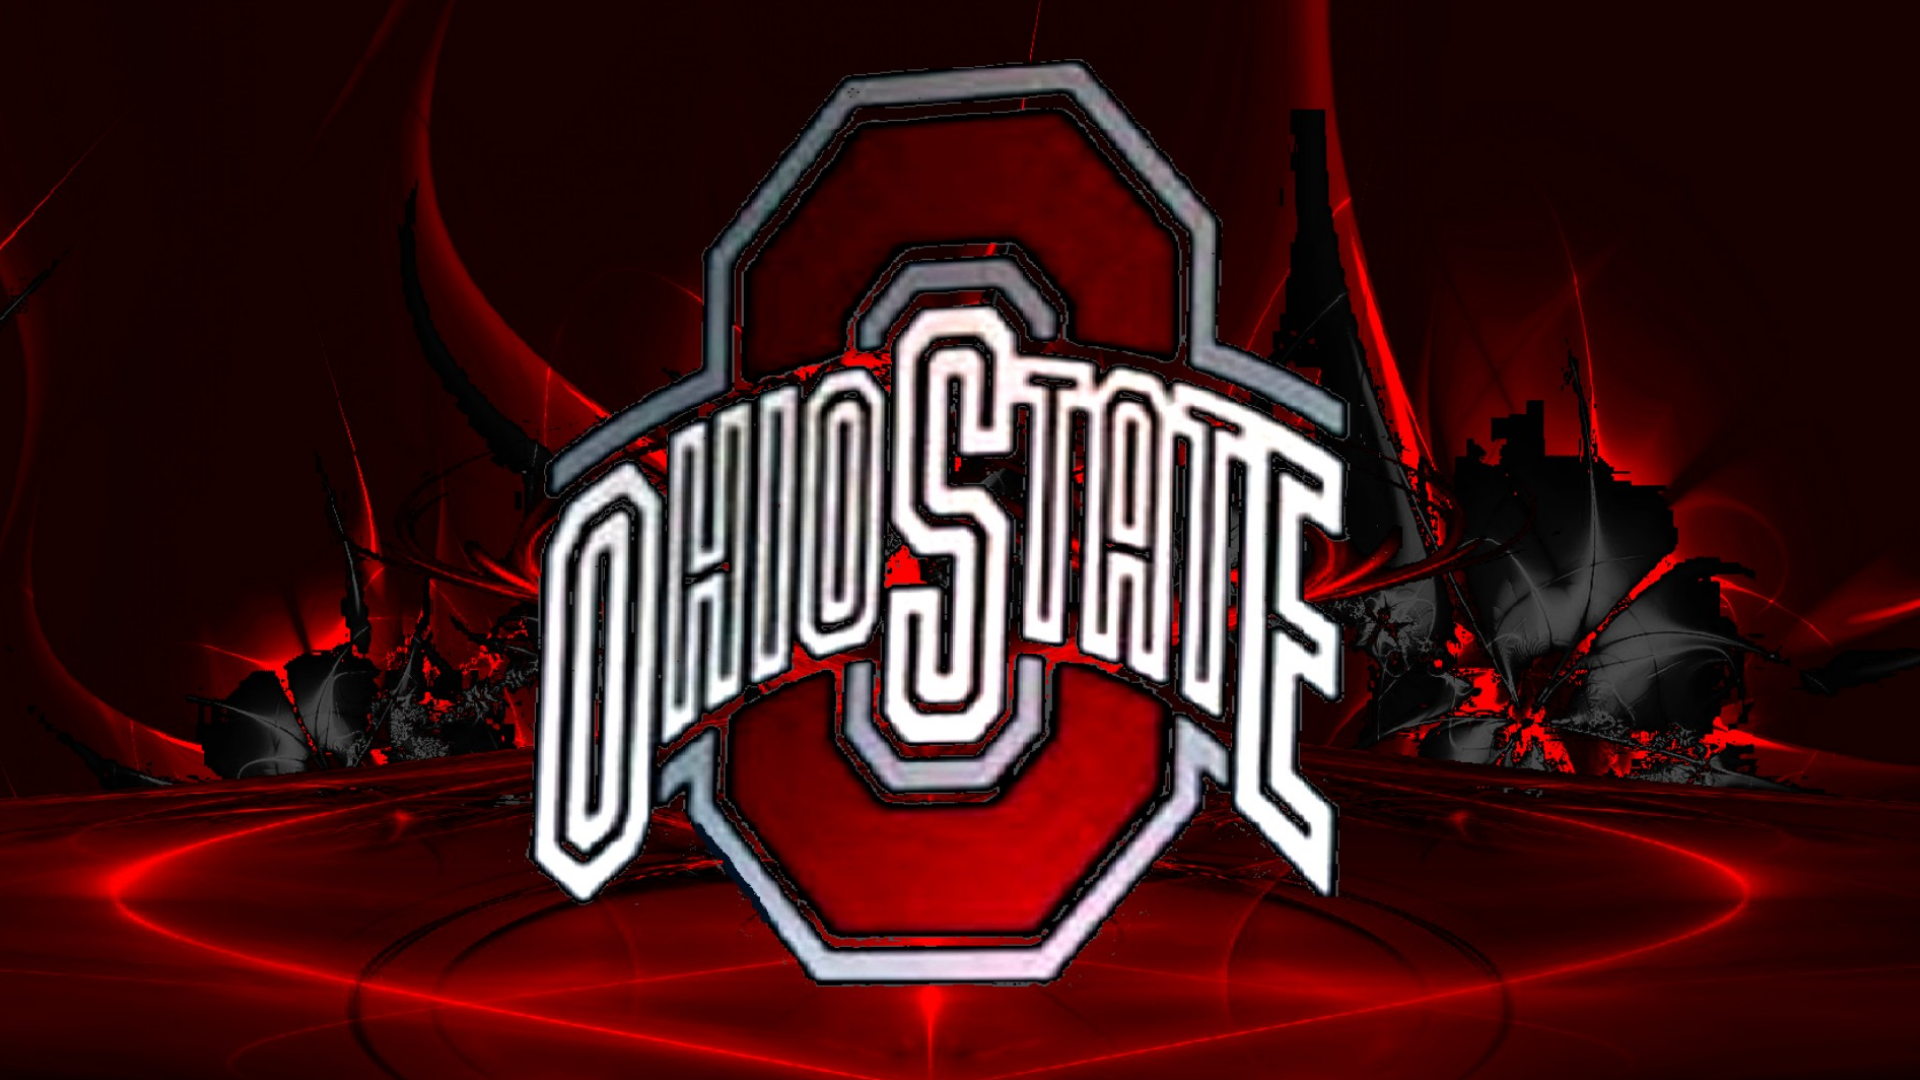 Ohio State Buckeyes images OHIO STATE RED BLOCK O ON AN ...